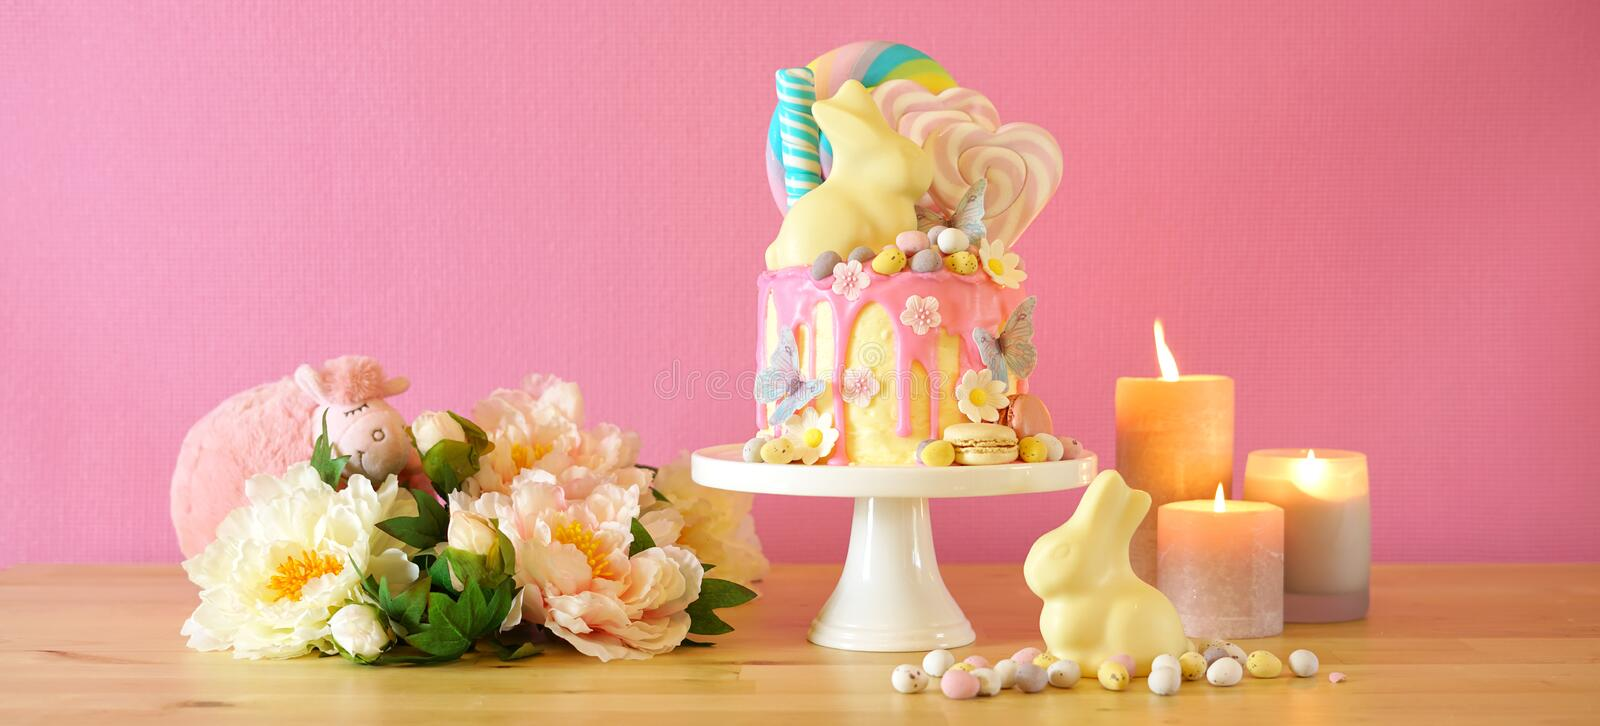 Easter candy land drip cake decorated with lollipops and white bunny. stock photography